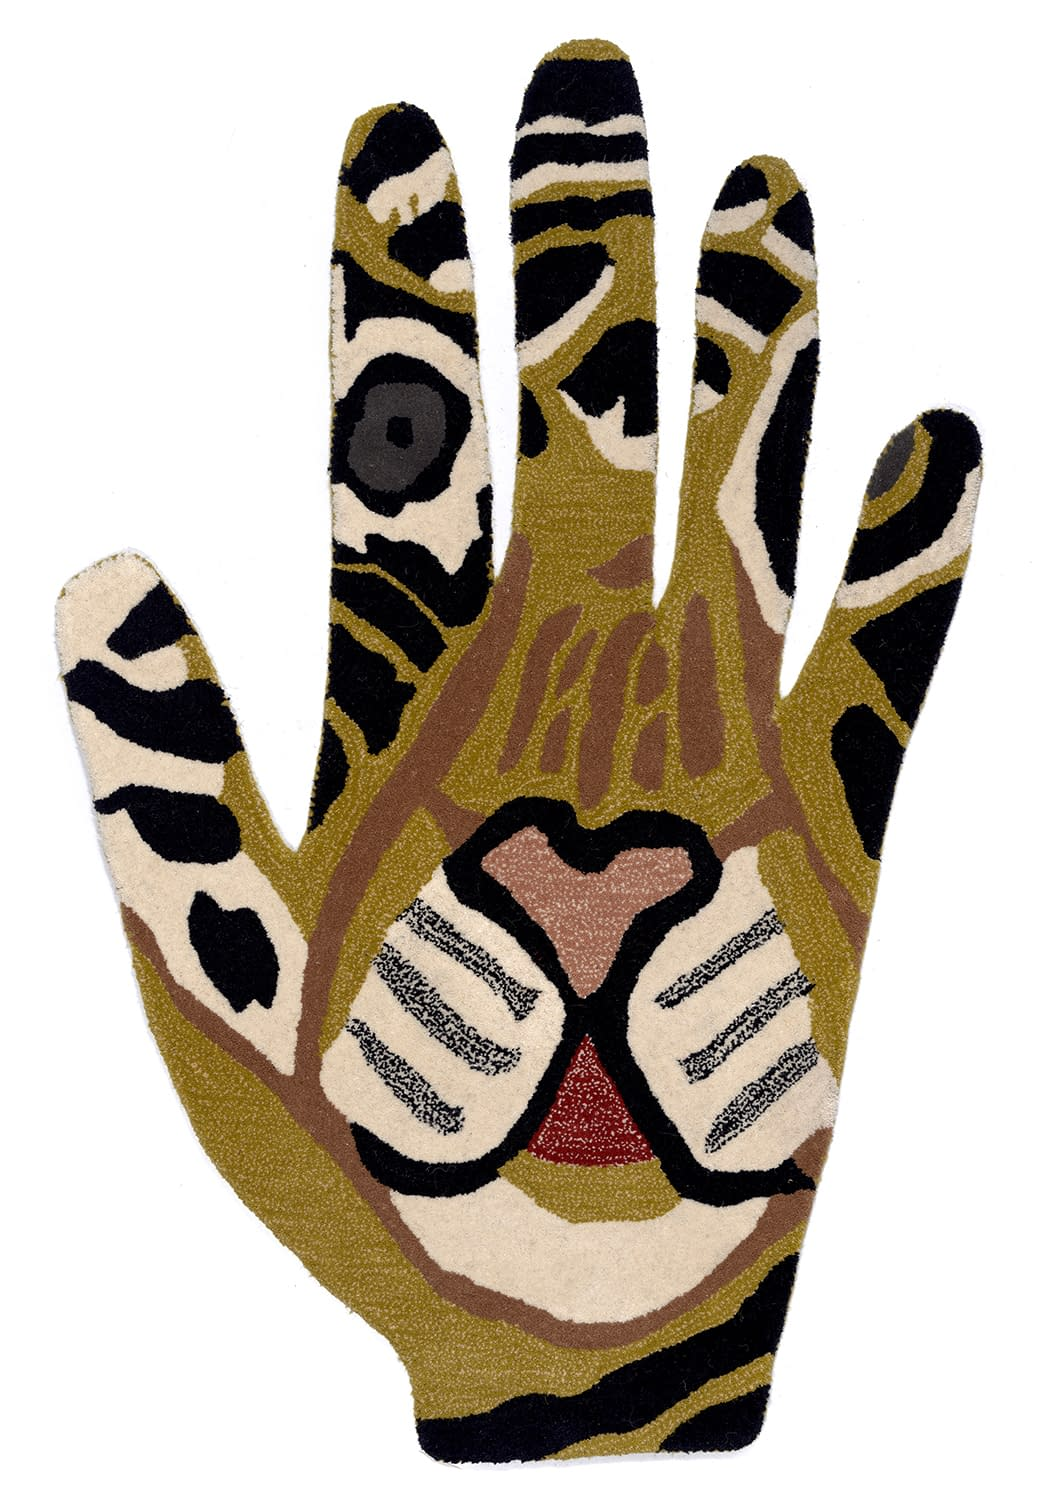 Tiger_Hand_Mary_Finlayson_Hand_Woven_Textile_45_x_29